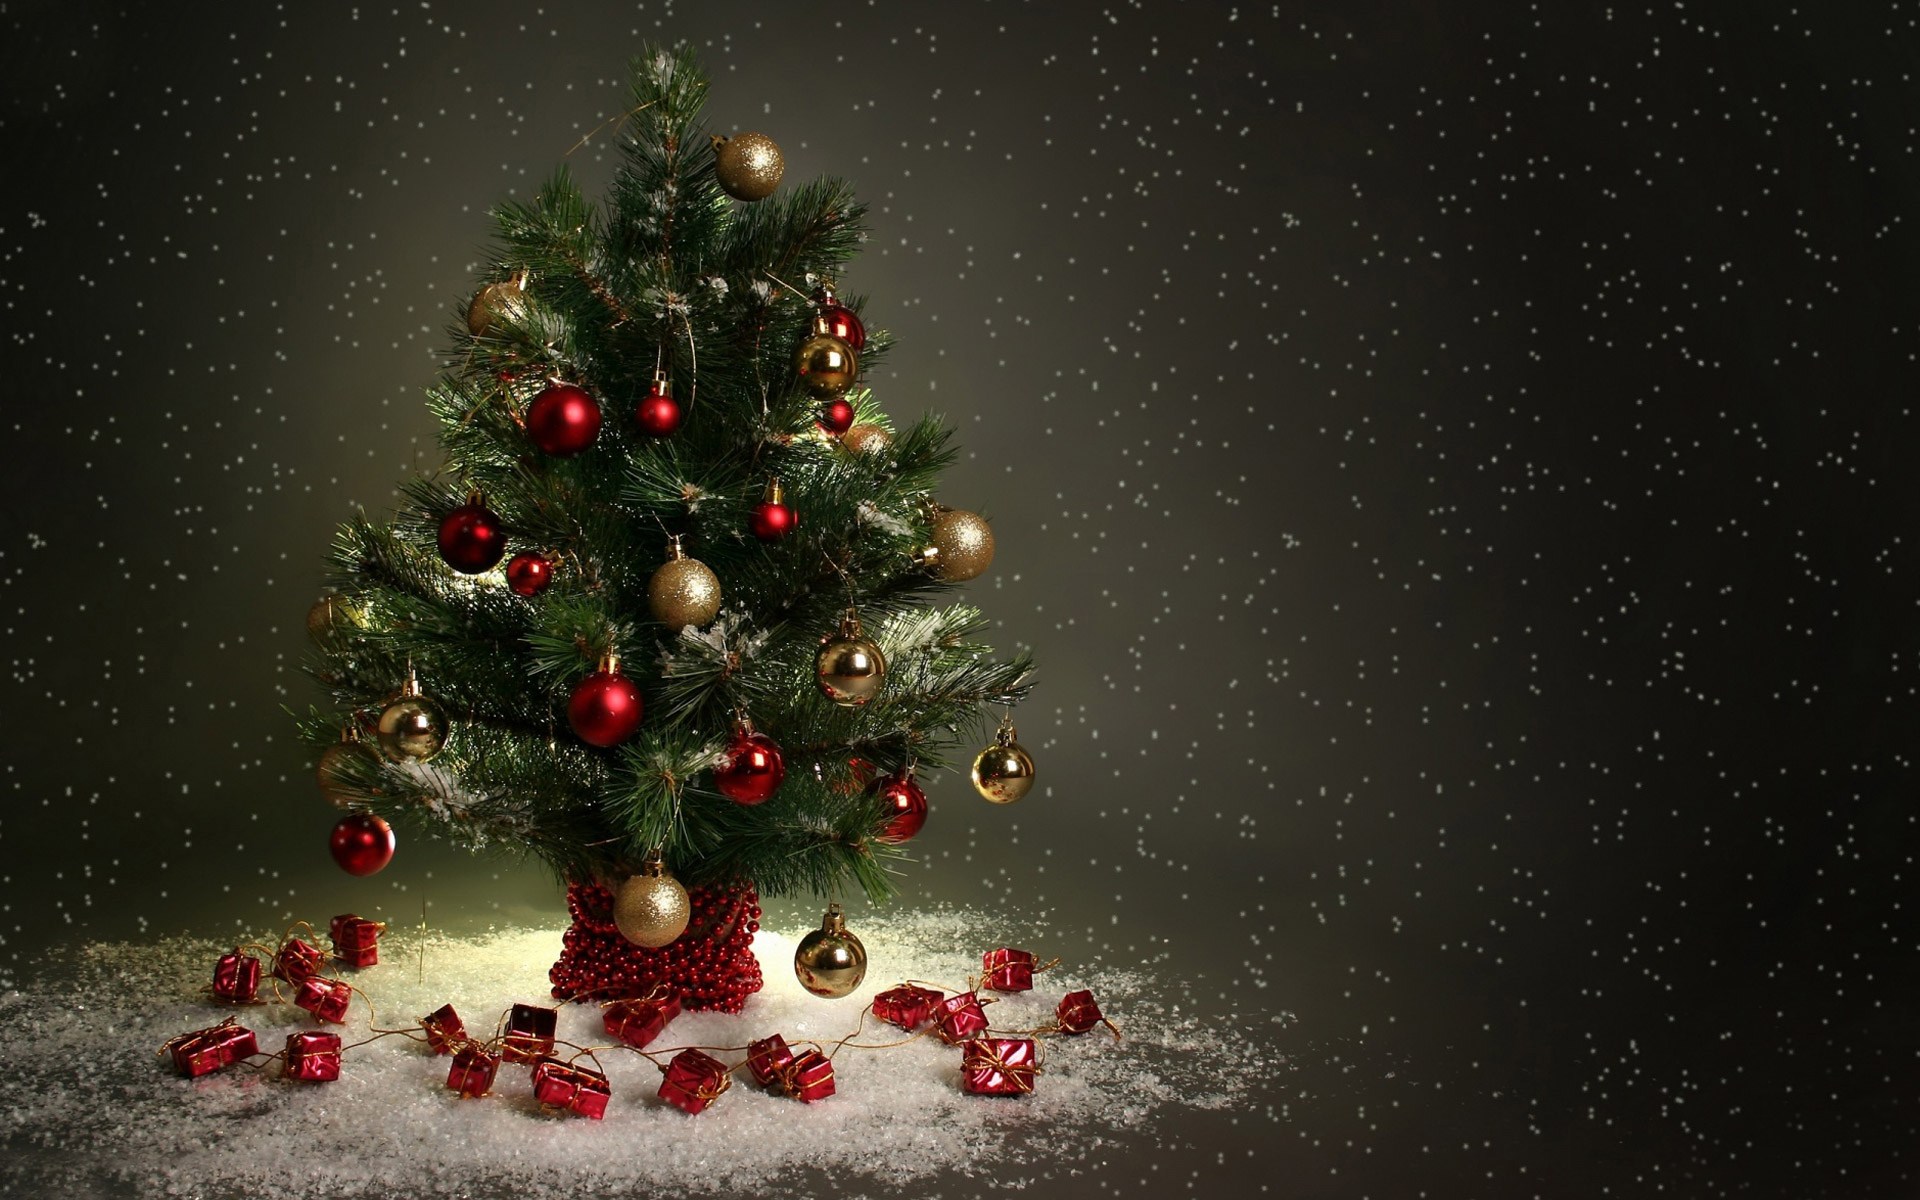 merry christmas hd wallpapers  image  u0026 greetings  free